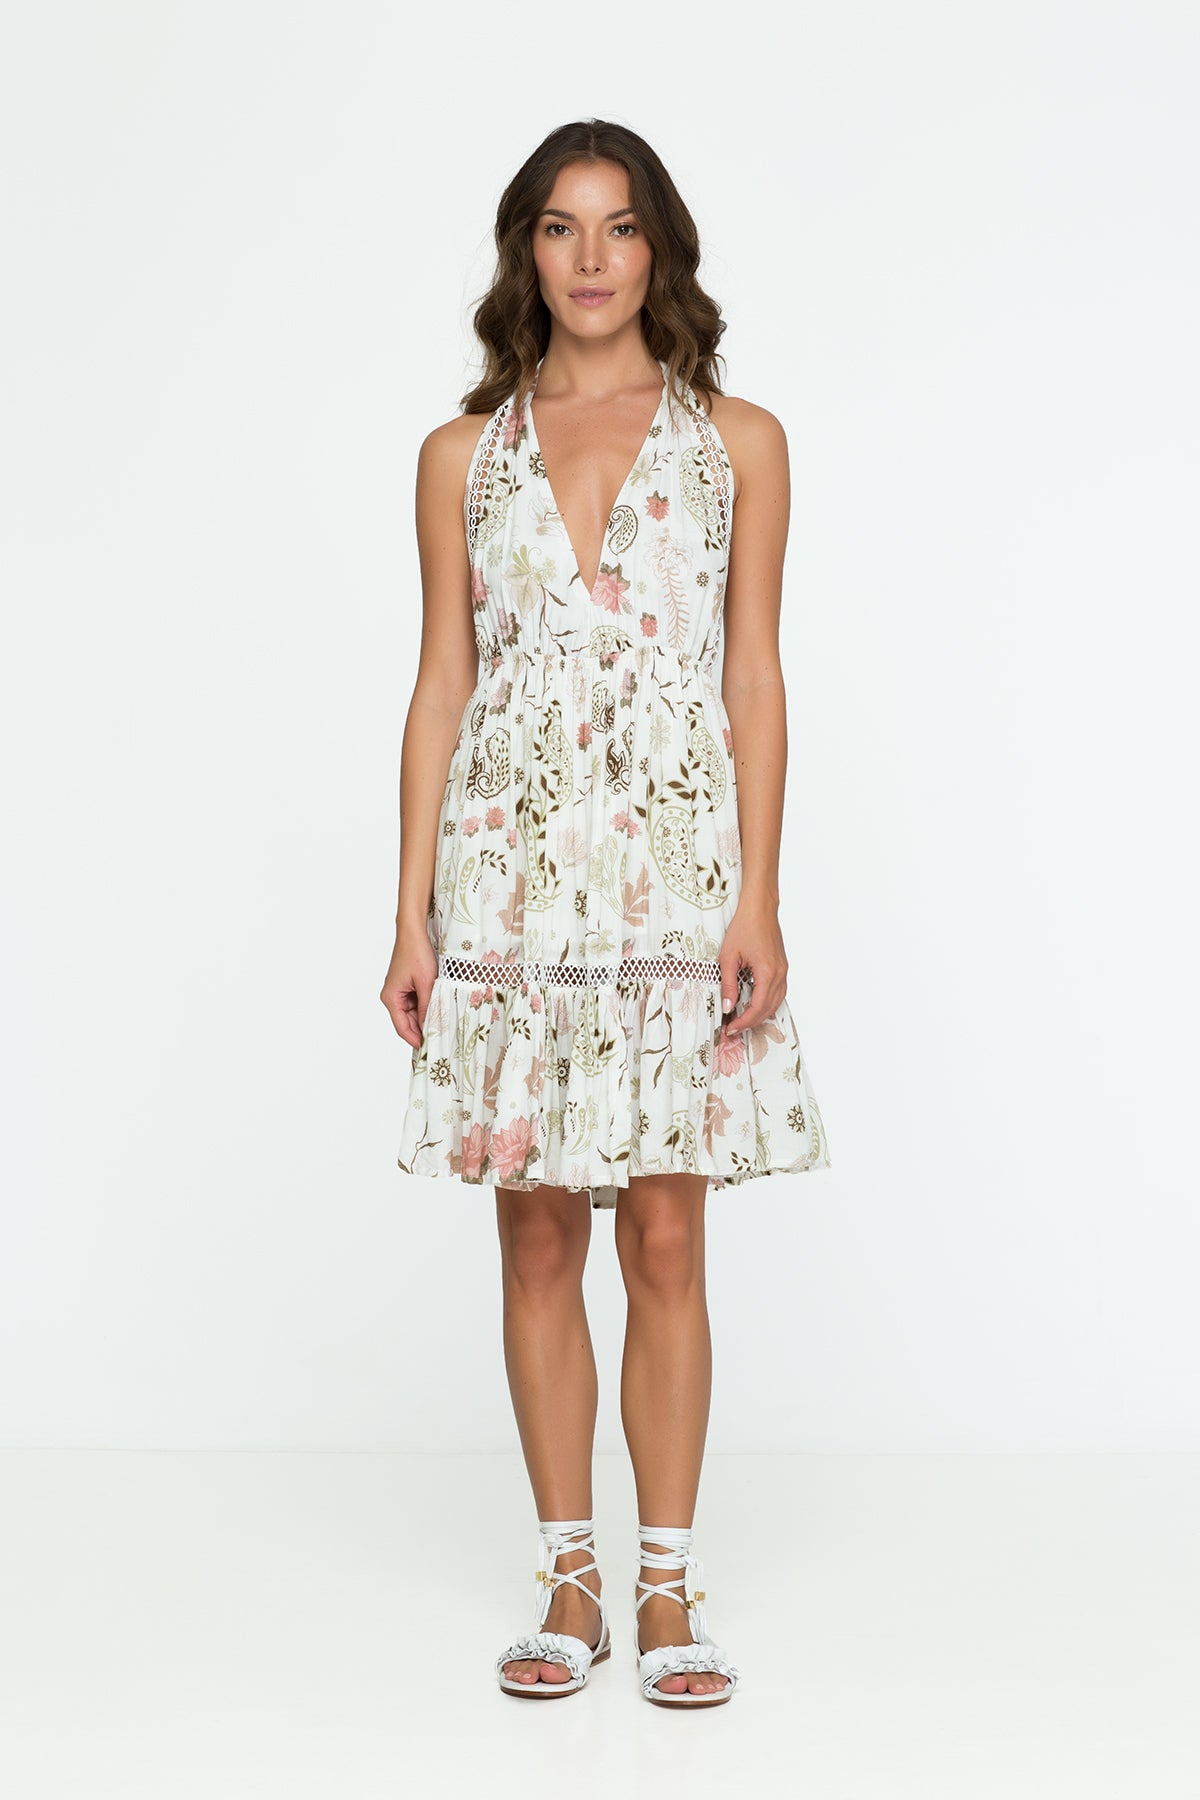 Flower Neck Floral Mini Dress White